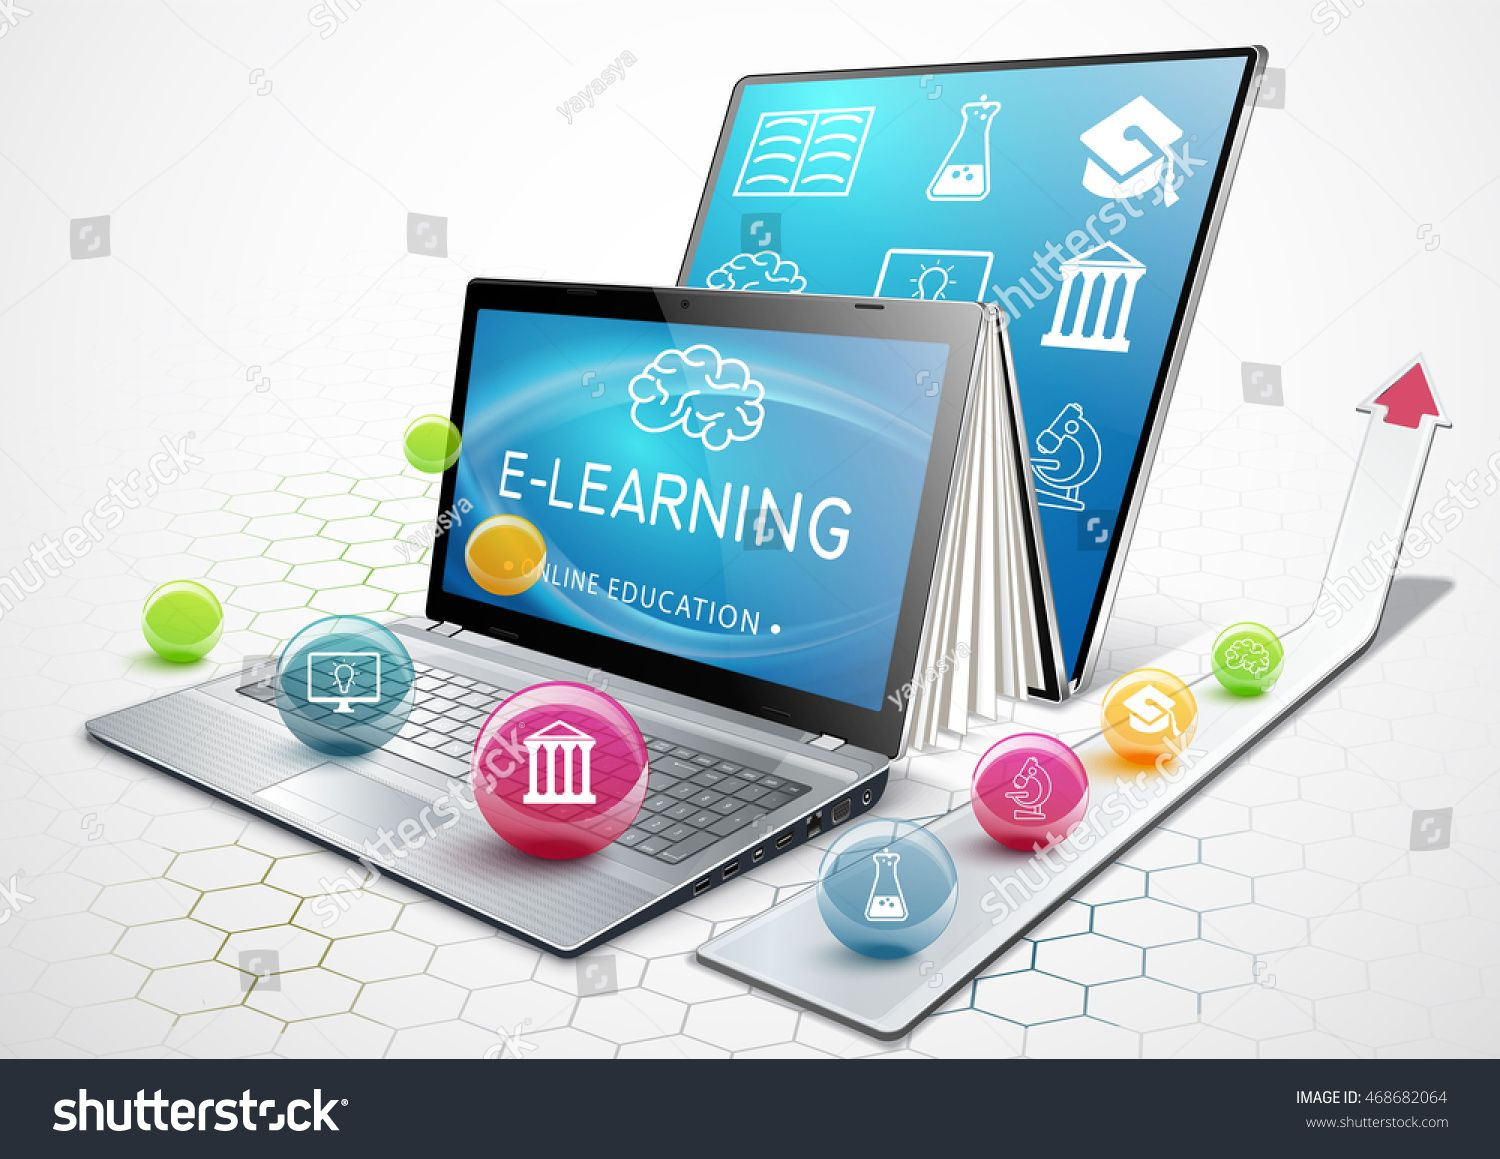 Download Our Professionally Designed Online Education Ppt